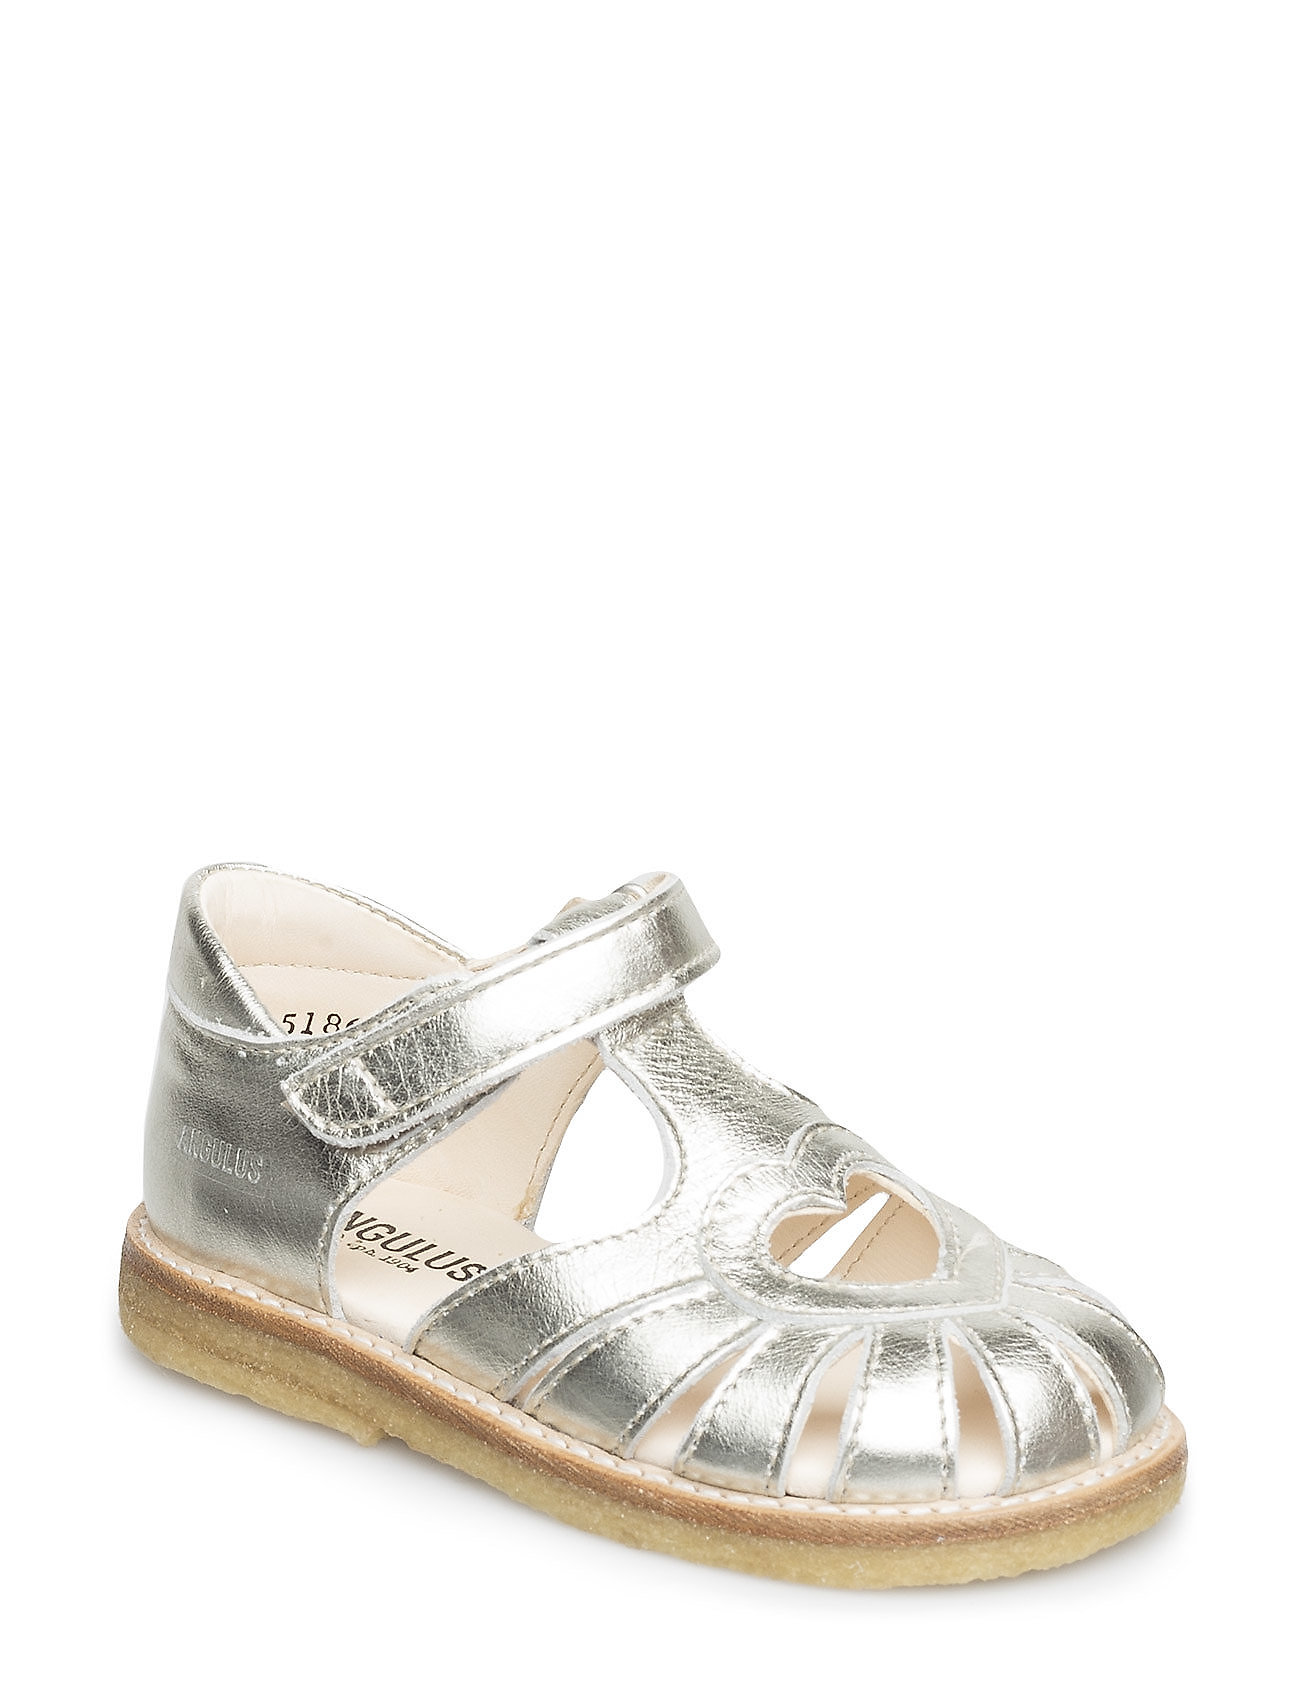 ANGULUS Sandal with heart detail - 1325 CHAMPAGNE